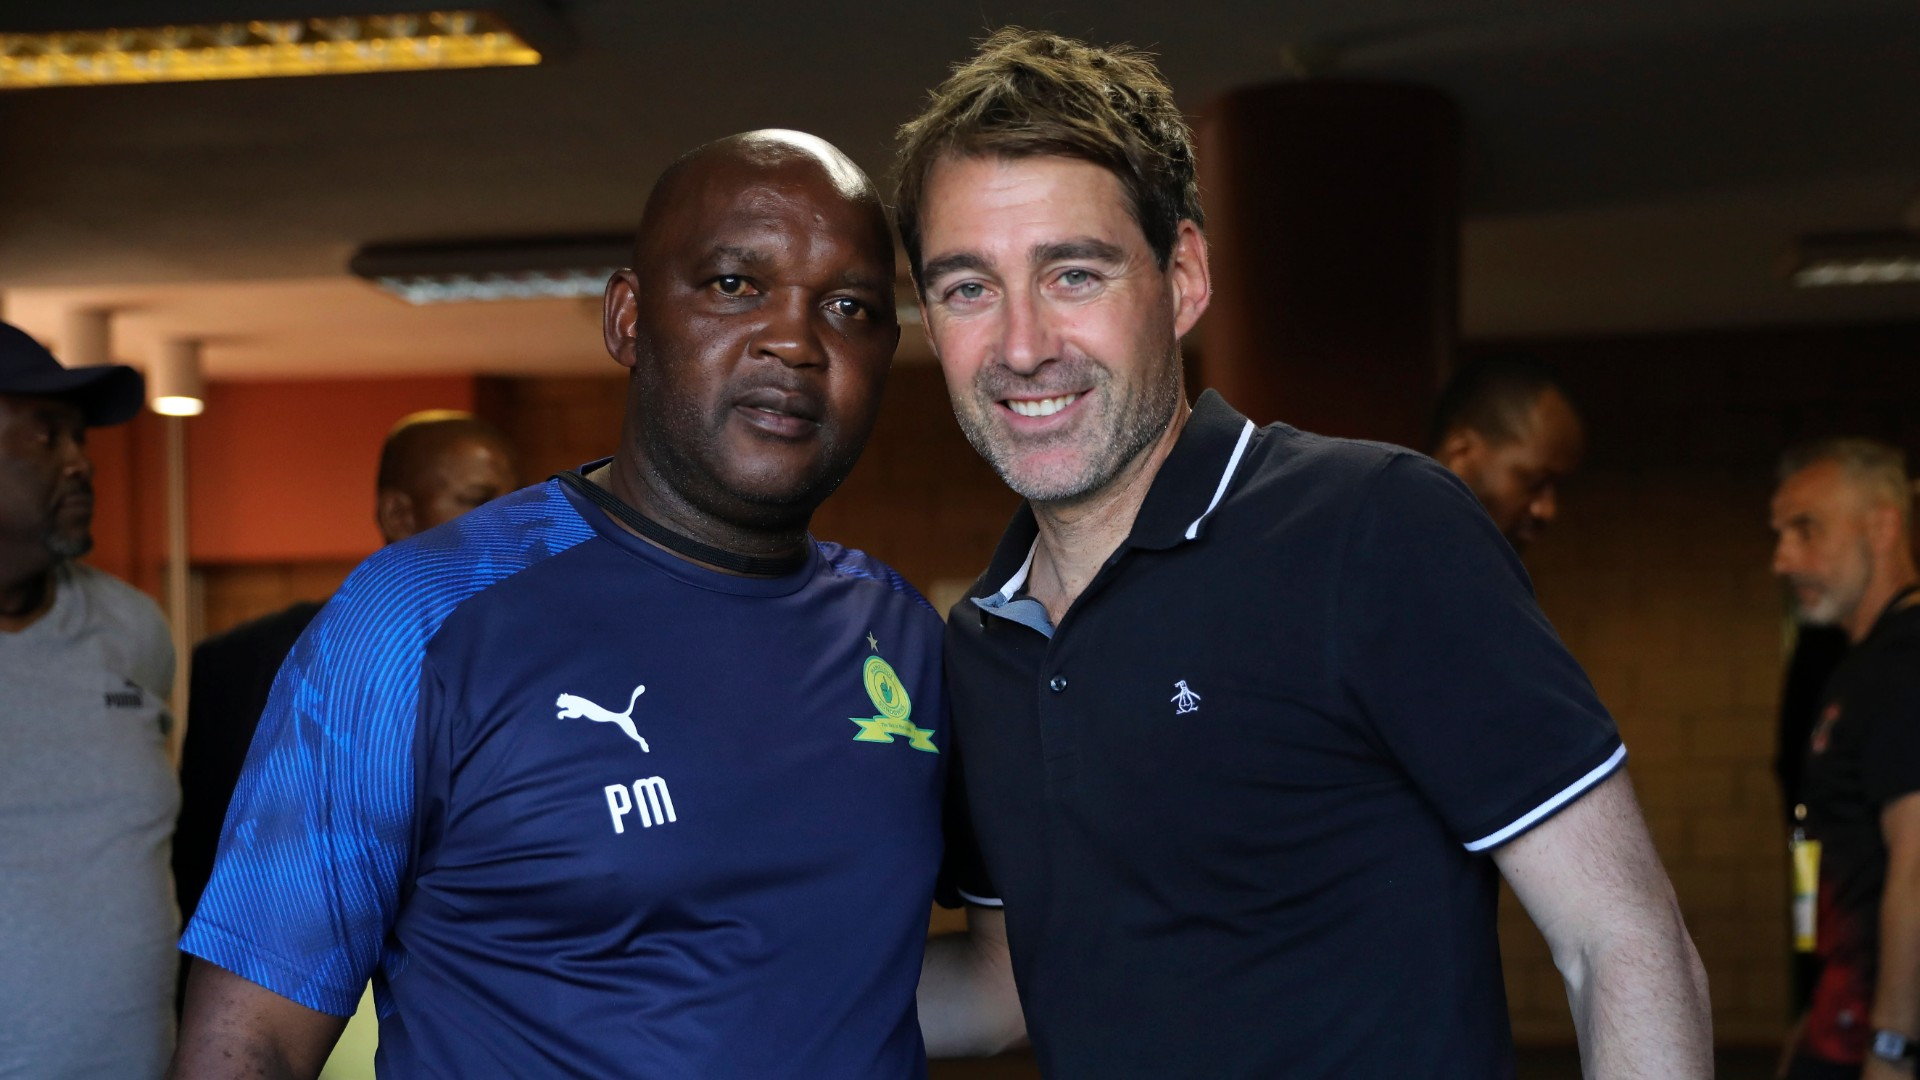 Pitso Mosimane, coach of Sundowns (L) and Rene Weiler, coach of Al Ahly, March 2020